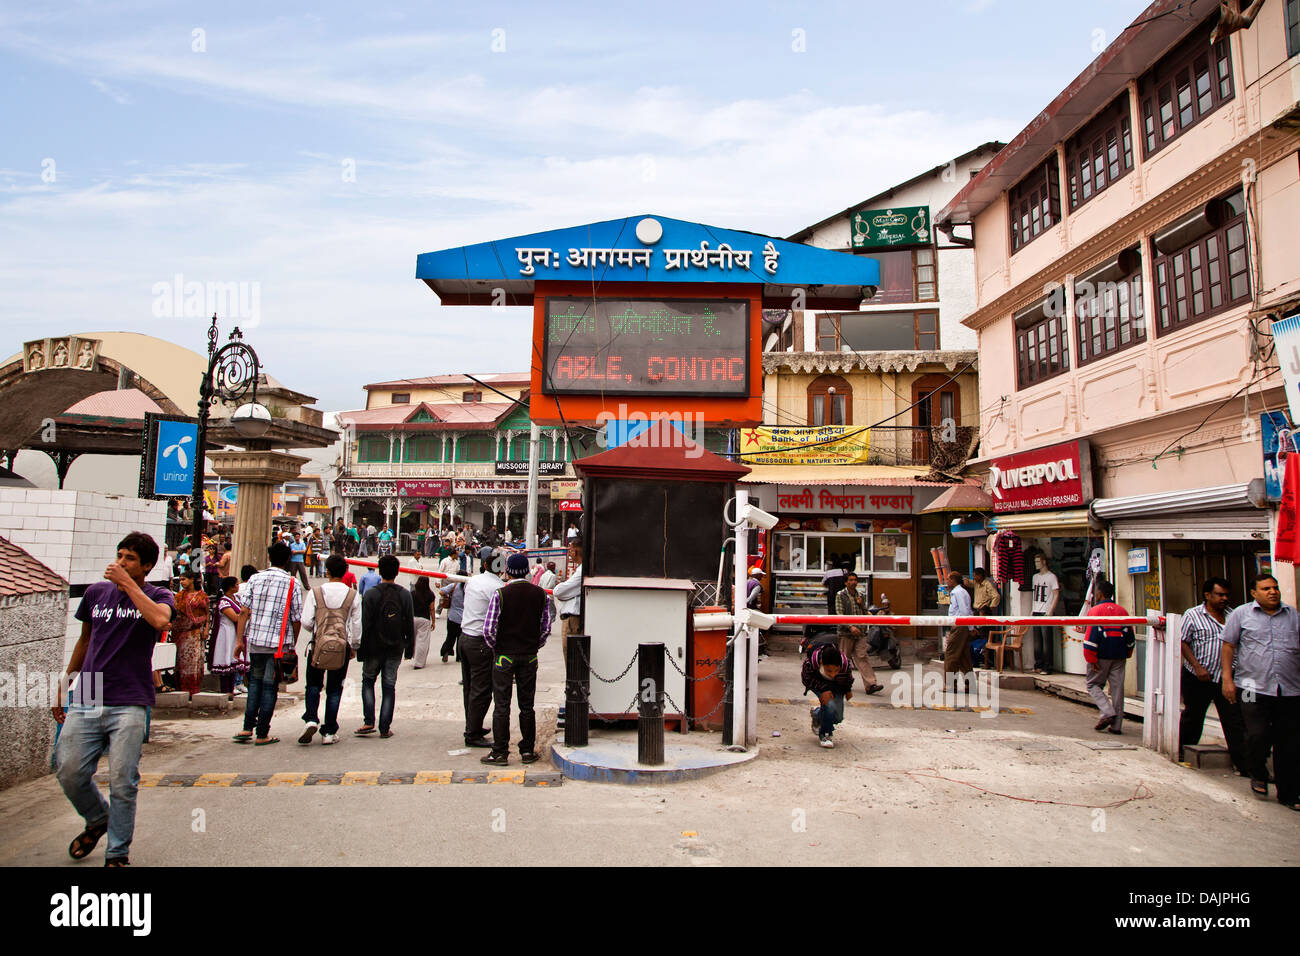 Tourists at the entrance of a shopping mall, Mall Road, Mussoorie, Uttarakhand, India - Stock Image